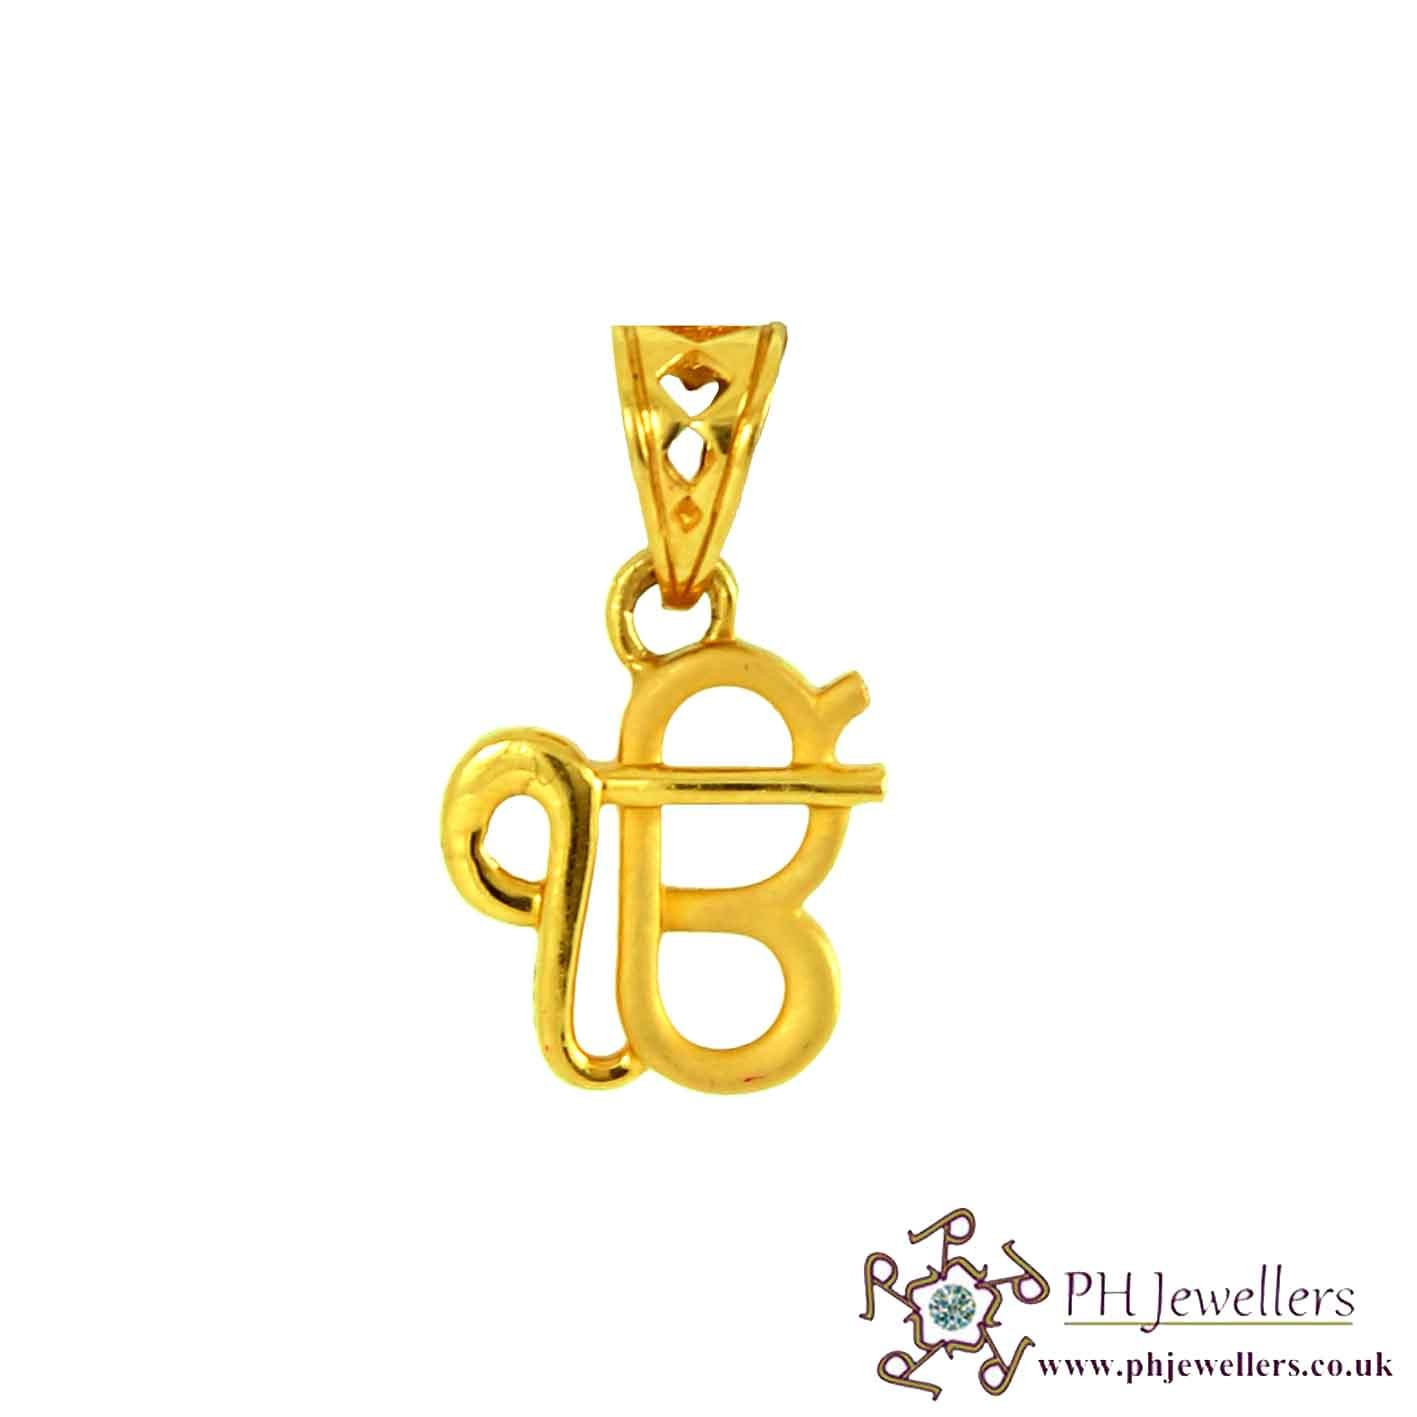 Online gold jewellery gold jewellery religious 22ct 916 hallmark online gold jewellery gold jewellery religious 22ct 916 hallmark yellow gold ek onkar pendant rp43 22 carat gold jewellers aloadofball Choice Image